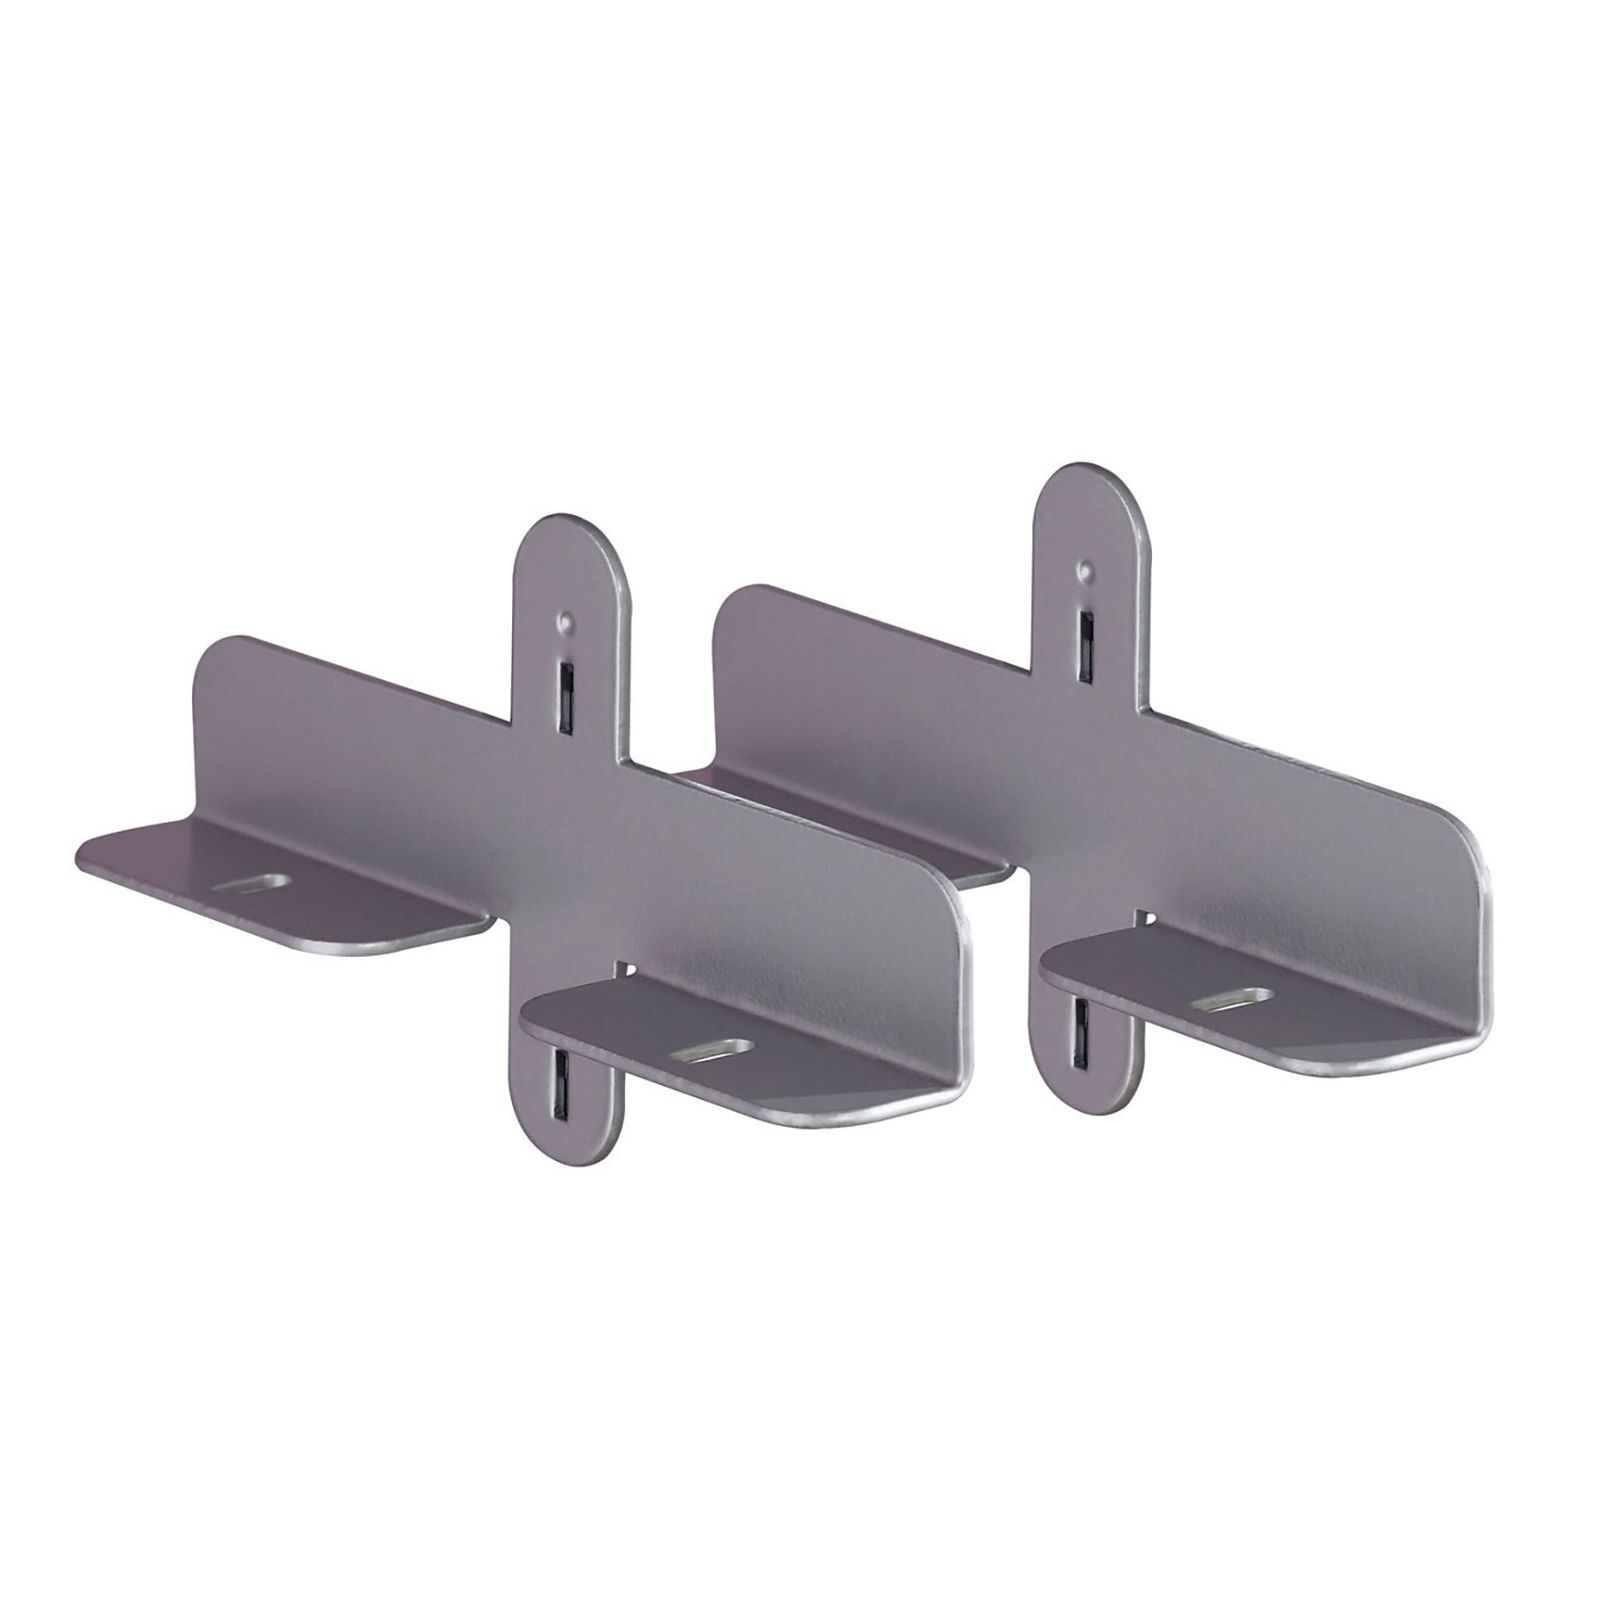 Aura Drawer Support Bracket pair